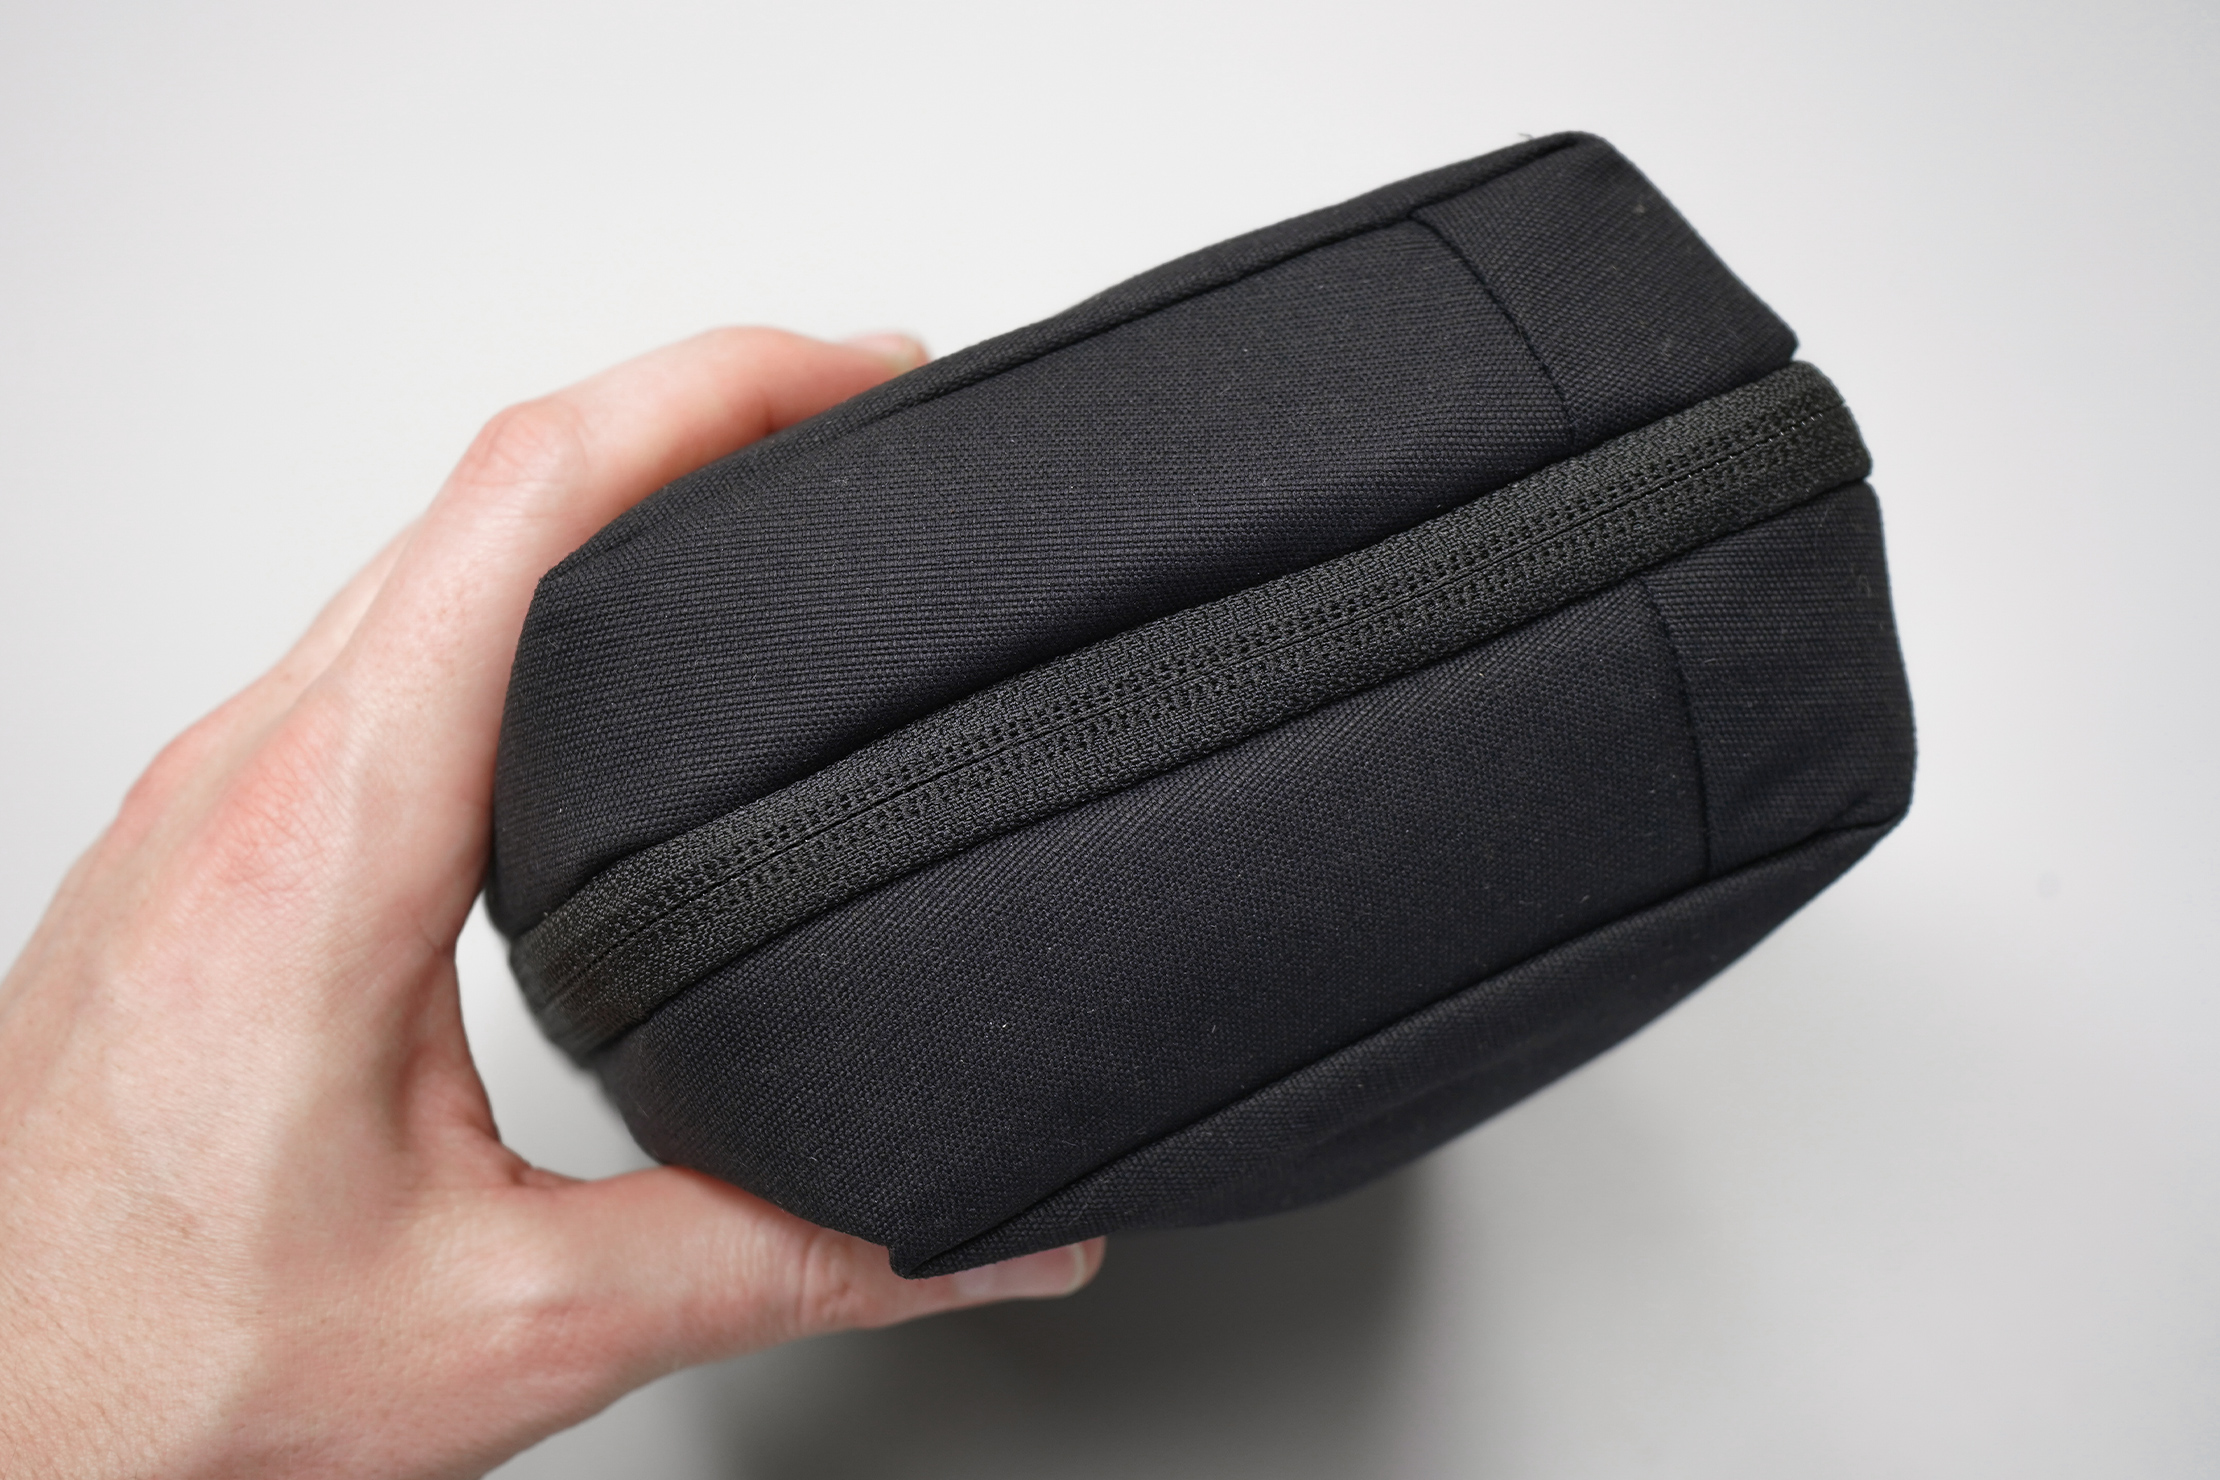 Moment MTW Tech Organizer | The pouch from the side